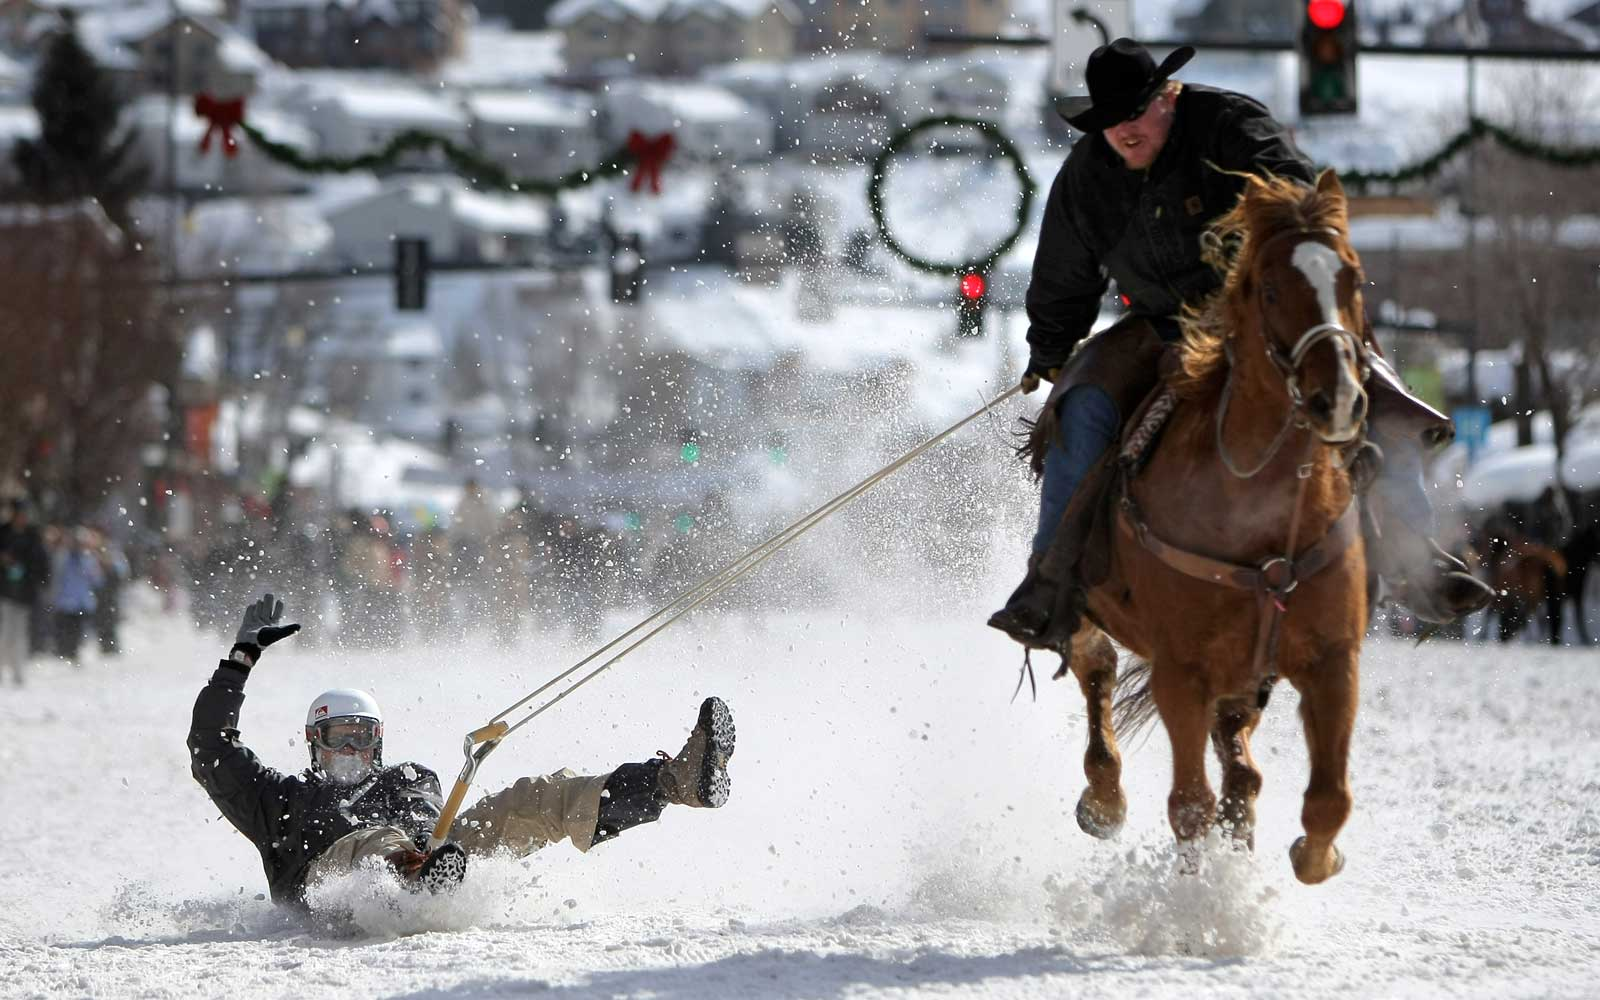 Shovel sledding at the Steamboat Springs Winter Carnival